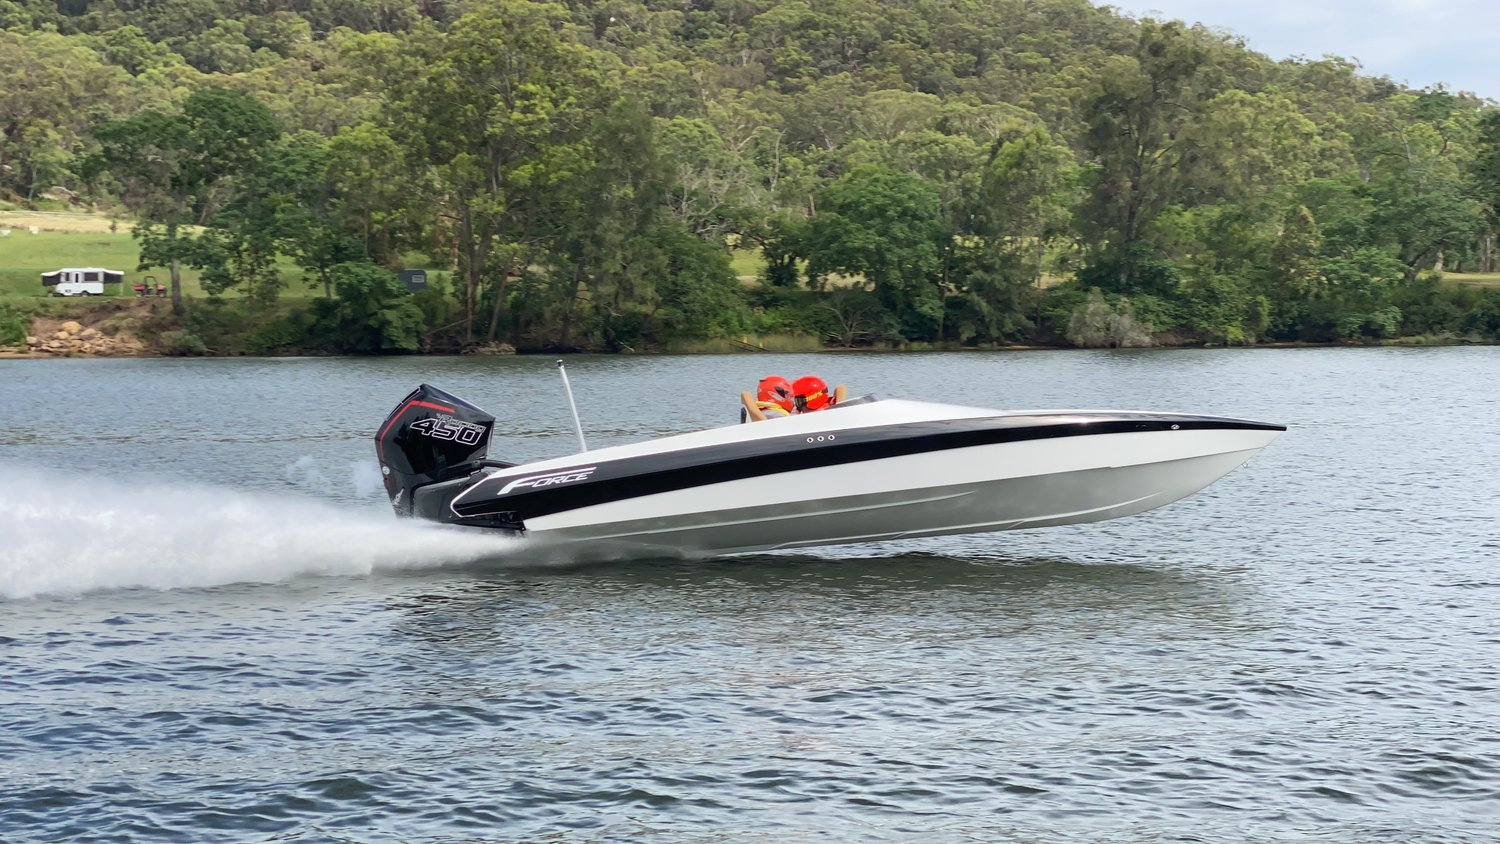 Force boat equipped with Mercury Marine outboard